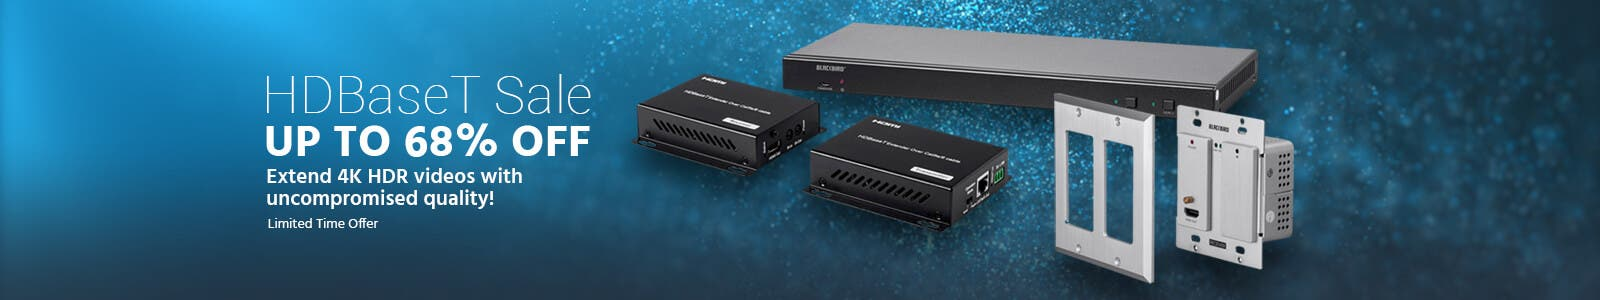 HDBaseT Sale 